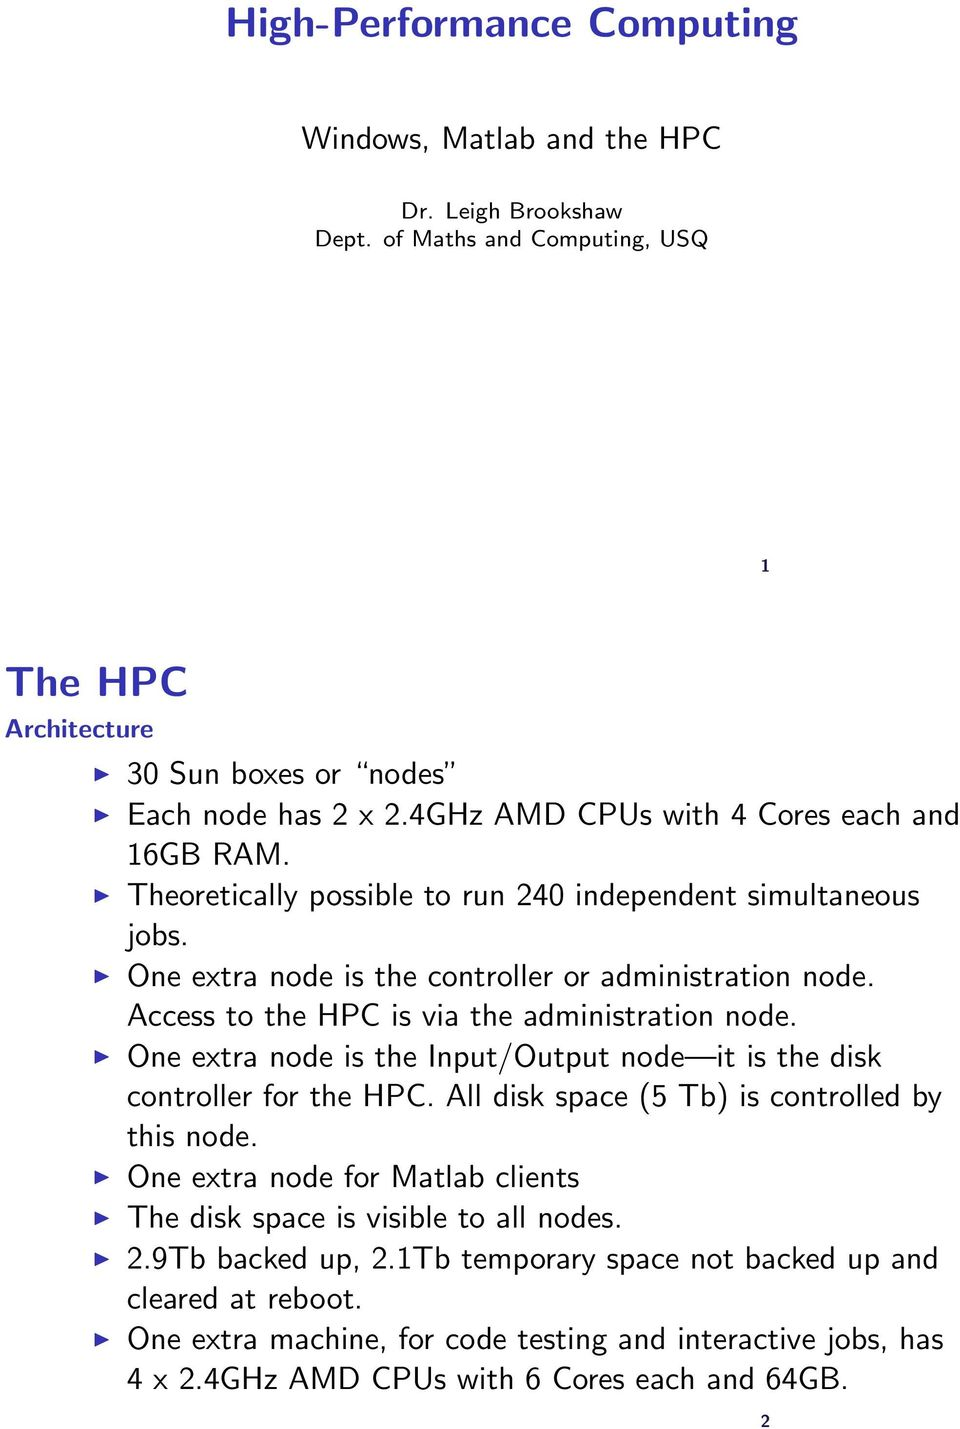 Access to the HPC is via the administration node. One extra node is the Input/Output node it is the disk controller for the HPC. All disk space (5 Tb) is controlled by this node.